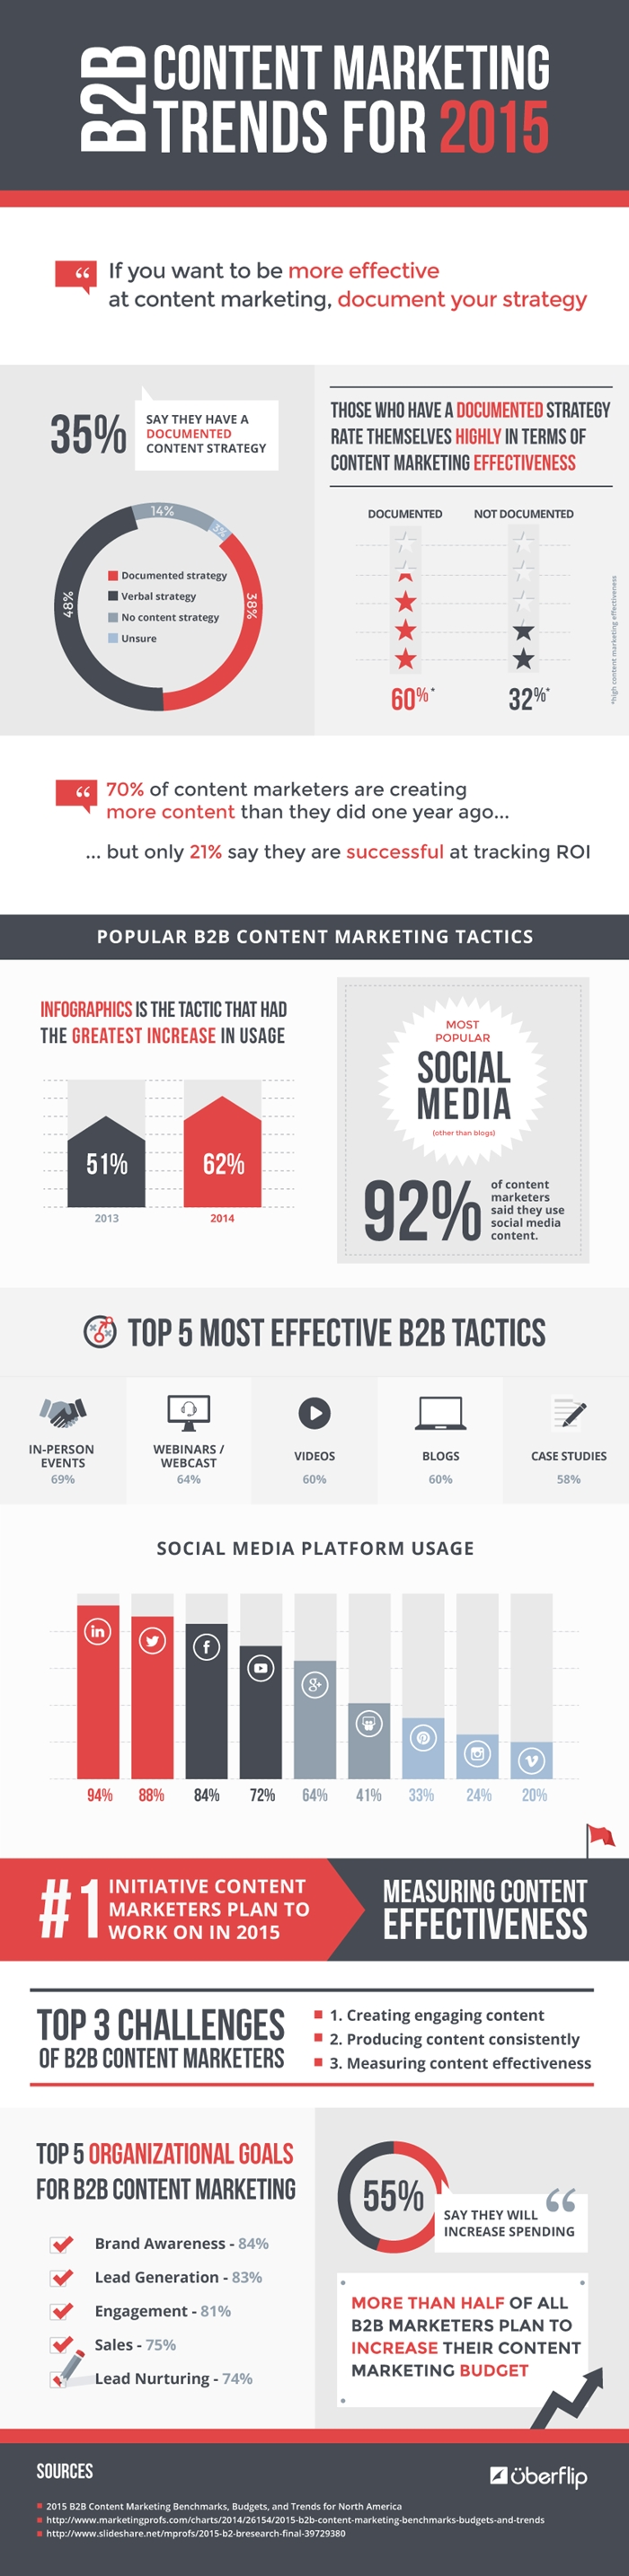 b2b-content-marketing-trends-2015-700